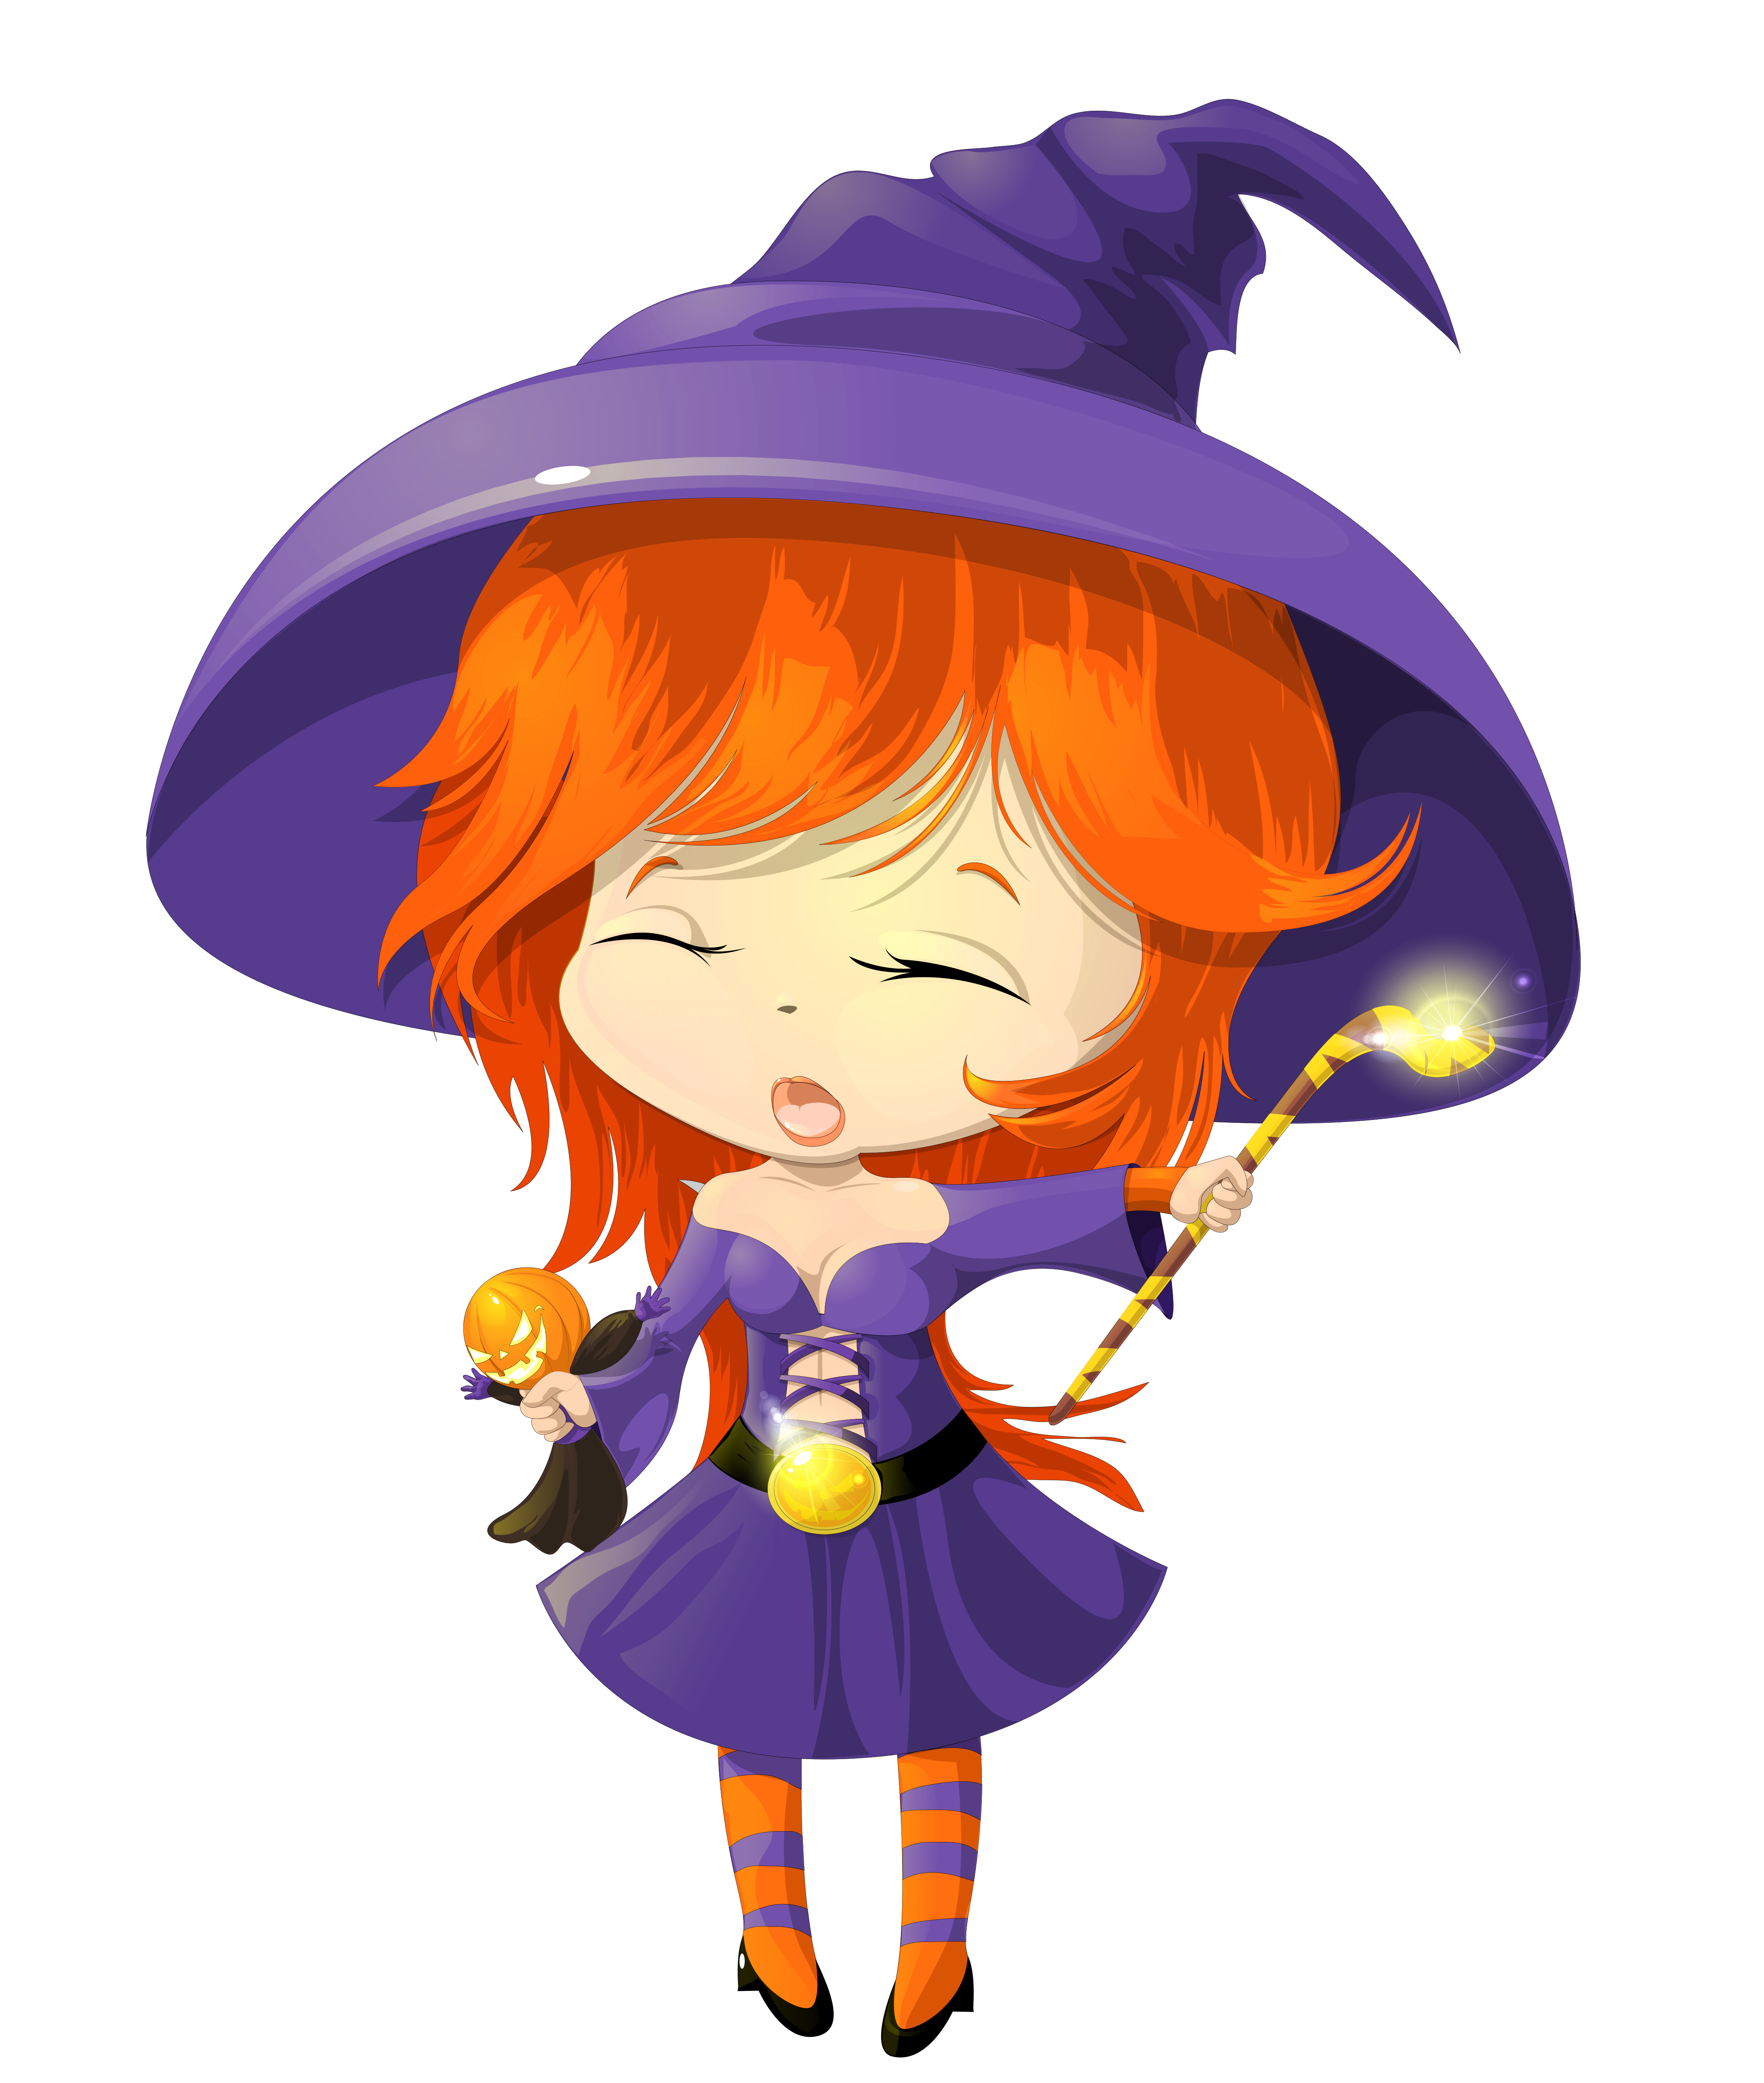 Cute halloween clipart witch picture stock Cute Purple Witch Transparent Clipart | Gallery Yopriceville - High ... picture stock